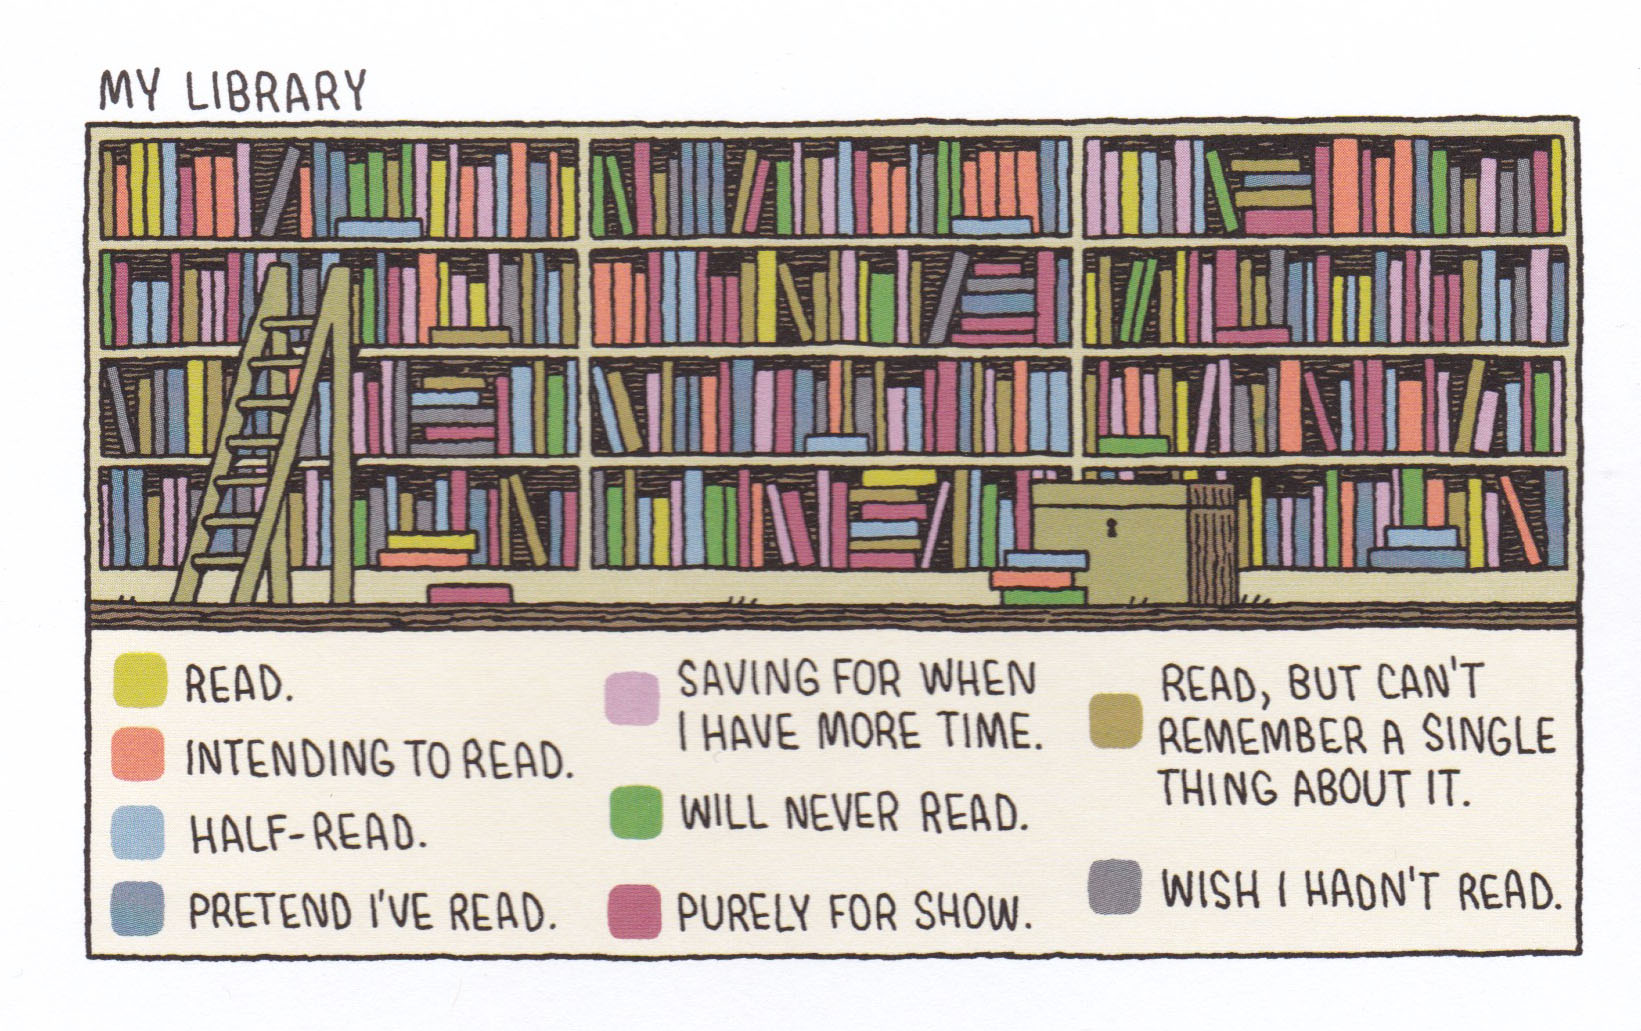 From the postcard collection The Snooty Bookshop by Tom Gauld